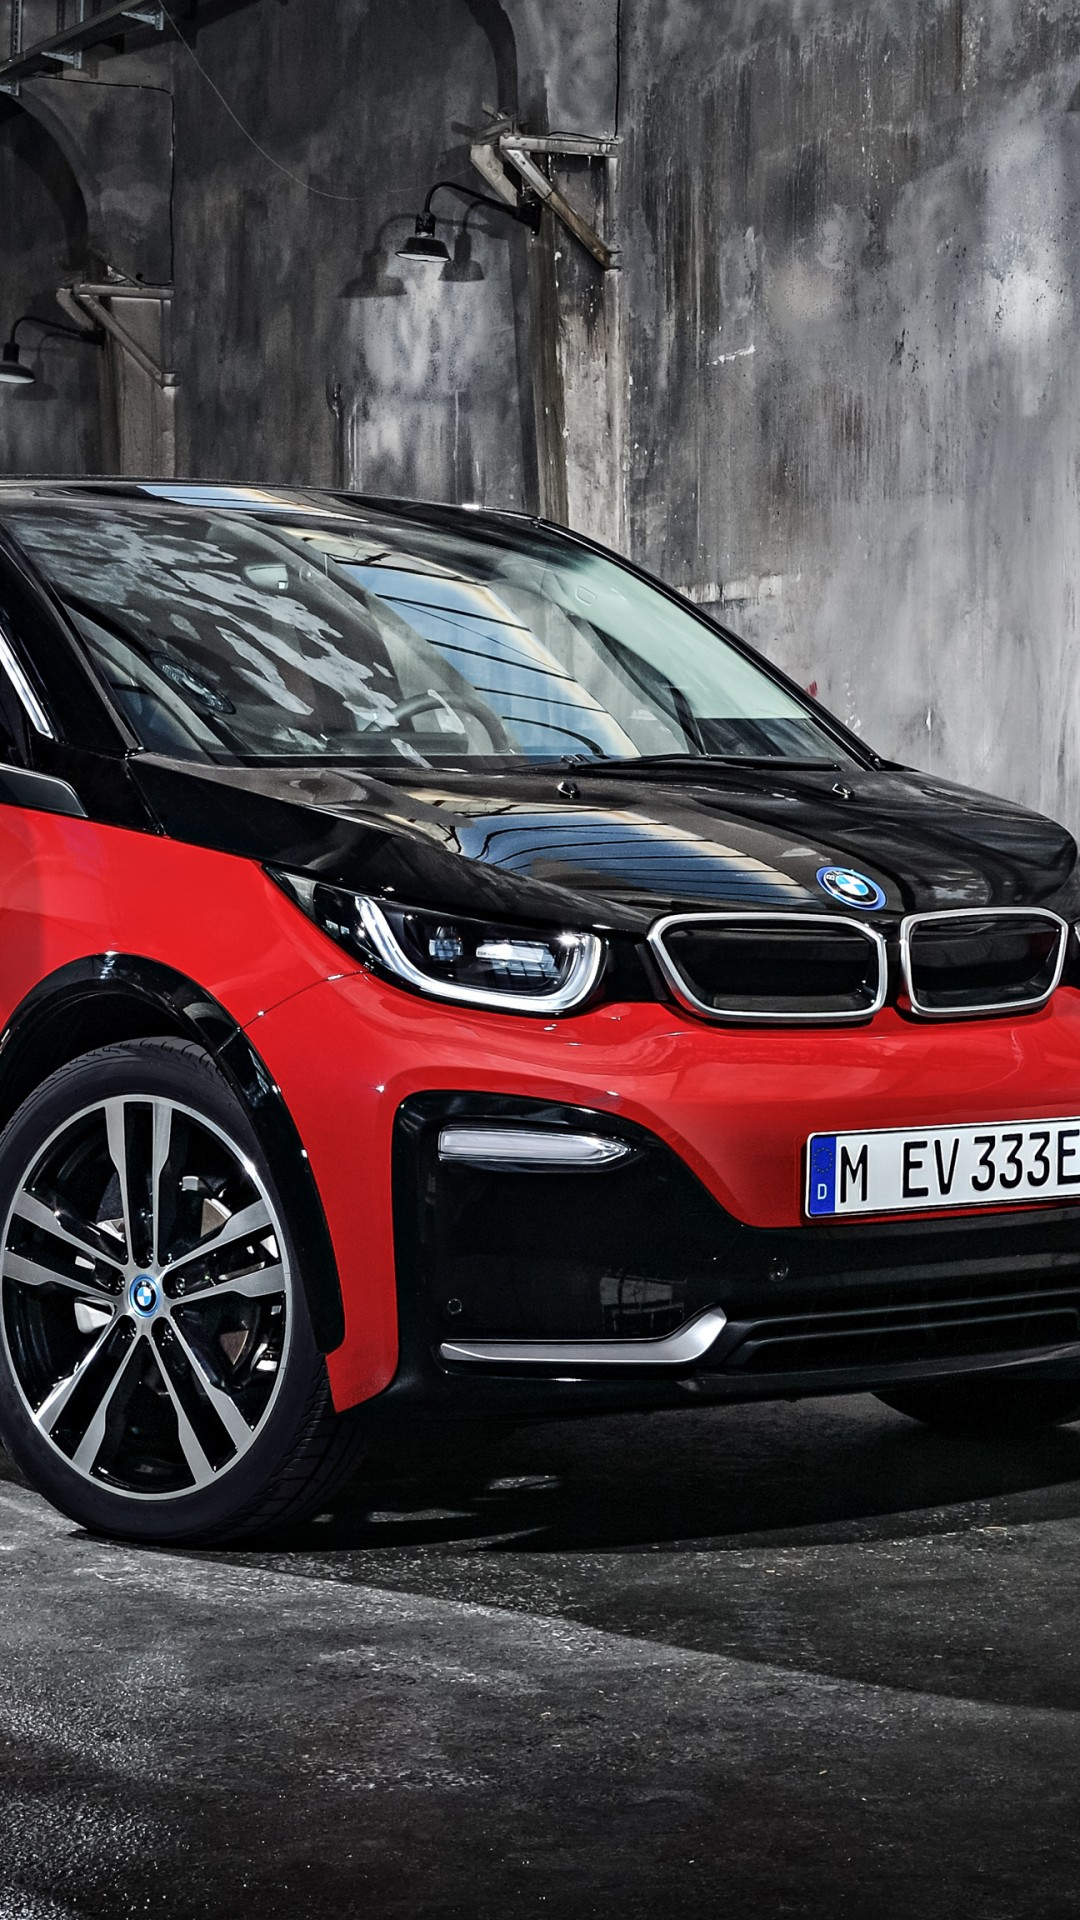 Wallpaper Bmw I3s Electric Car 2018 Cars 4k Cars